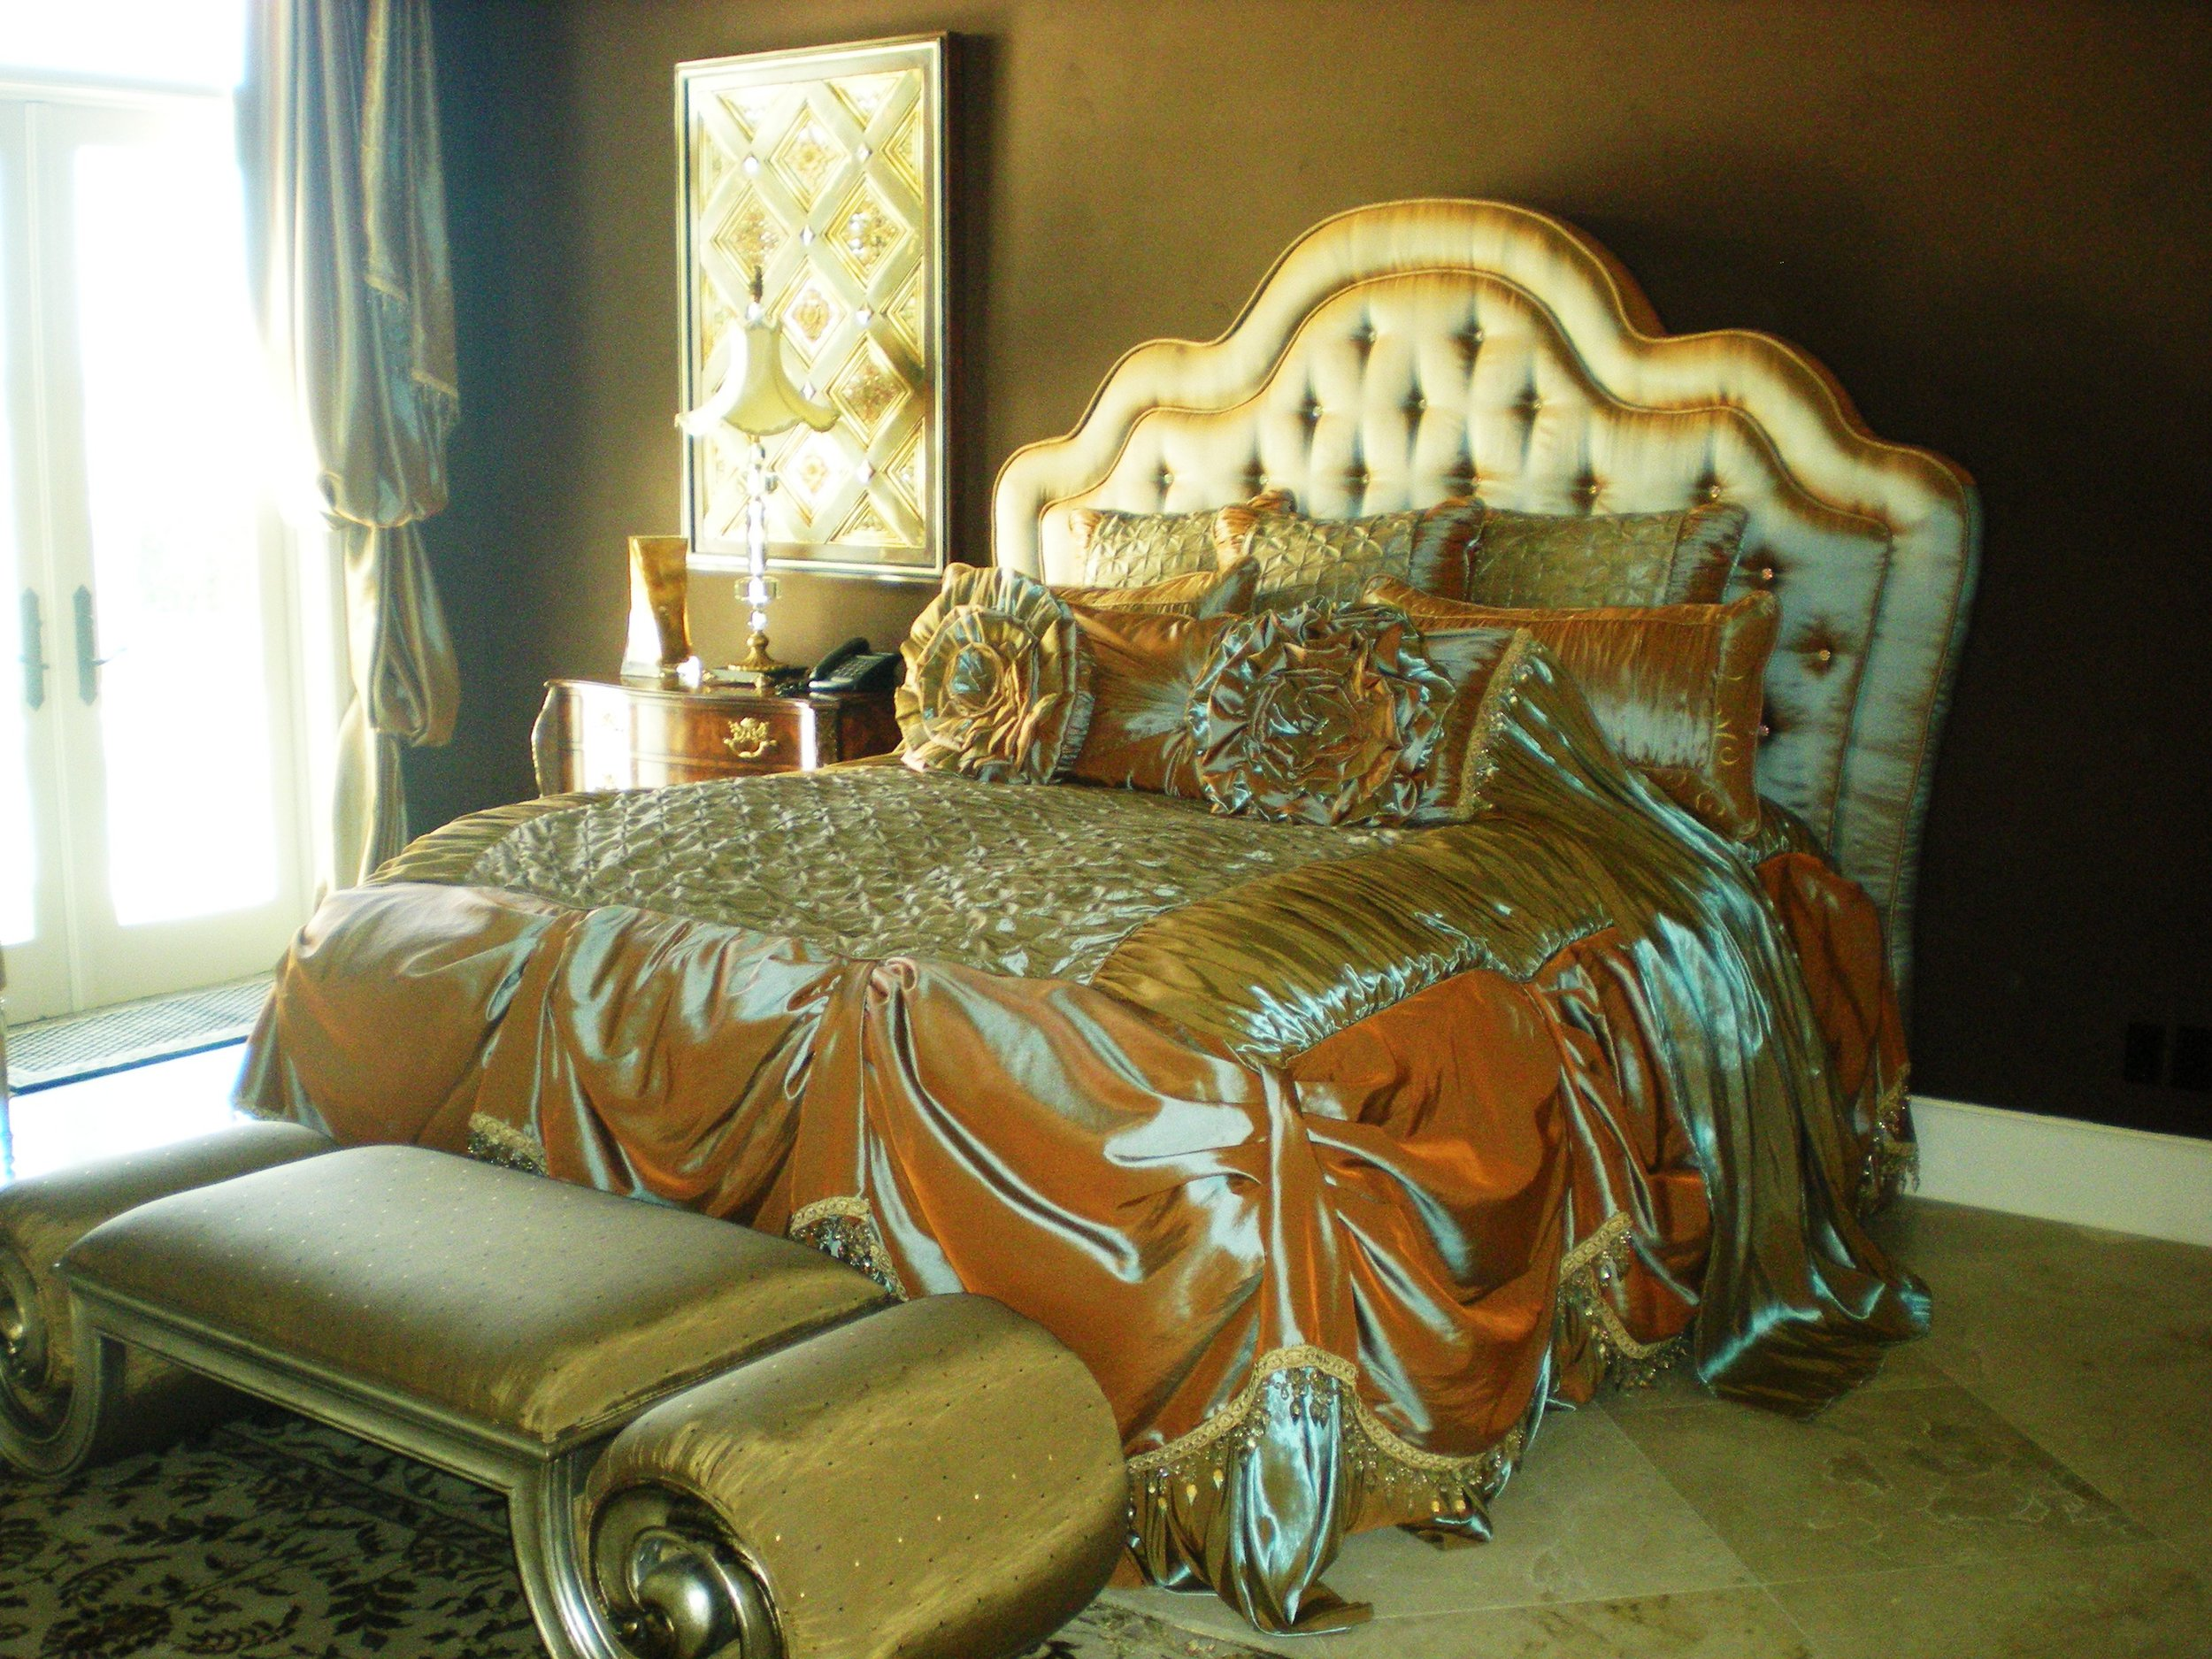 alejandra-canales-interior-designer-luxury-beding custom-made mcallen-texas (4).JPG